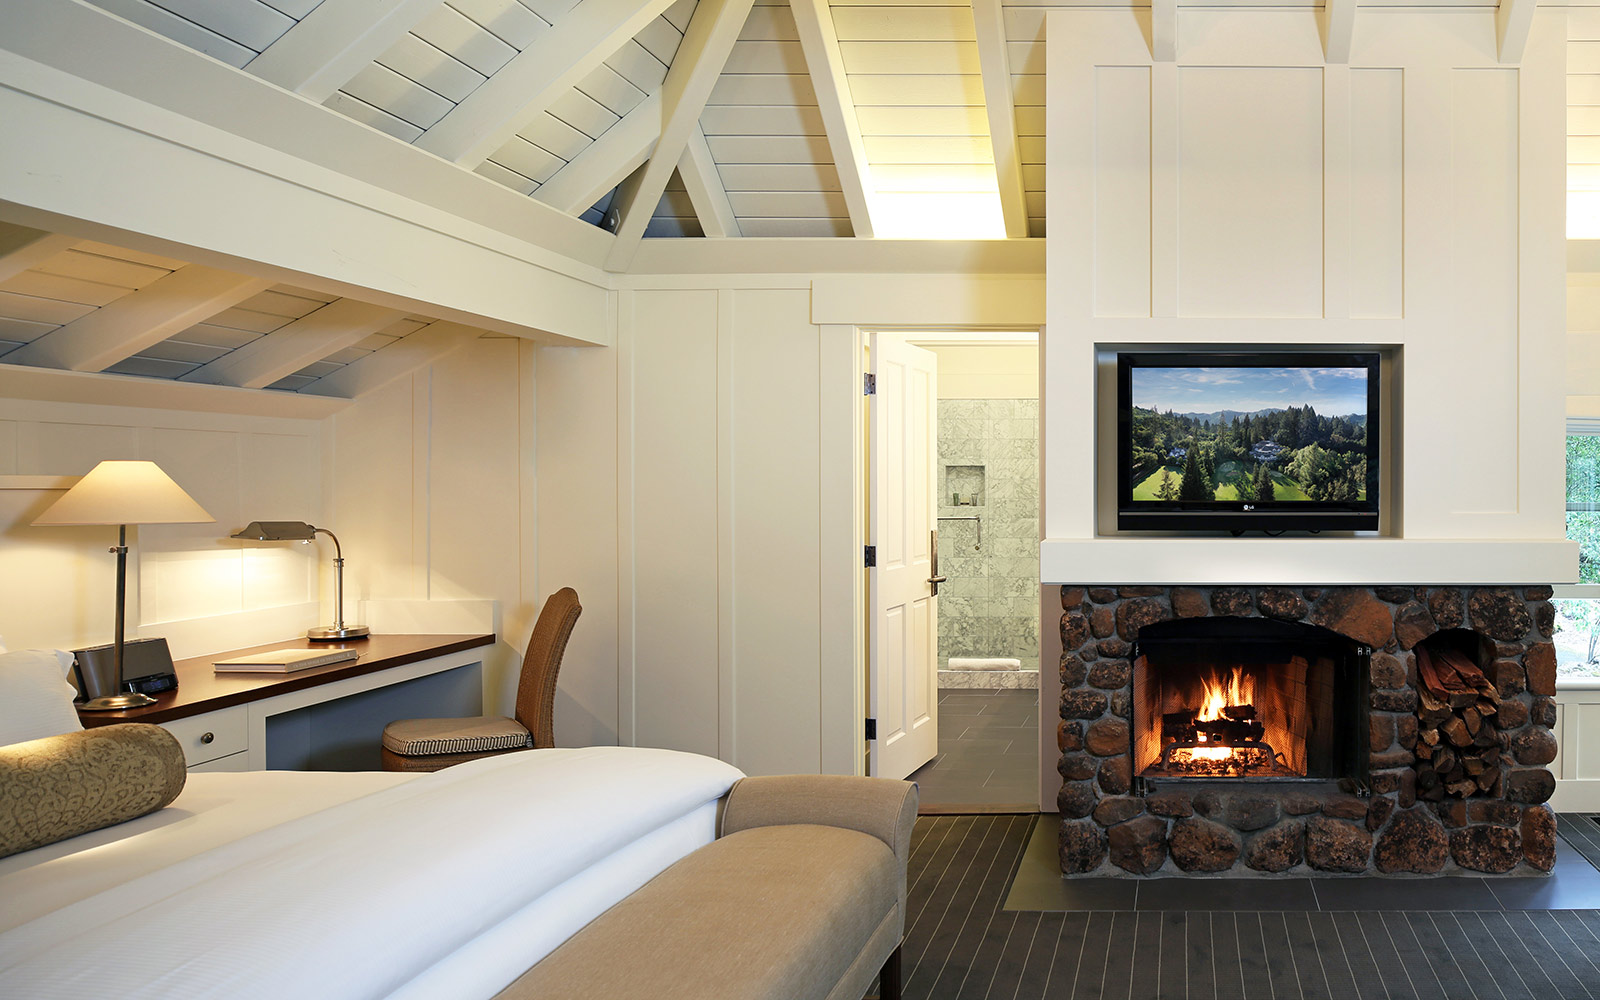 Oakview Room at Meadowood, Napa Valley, California